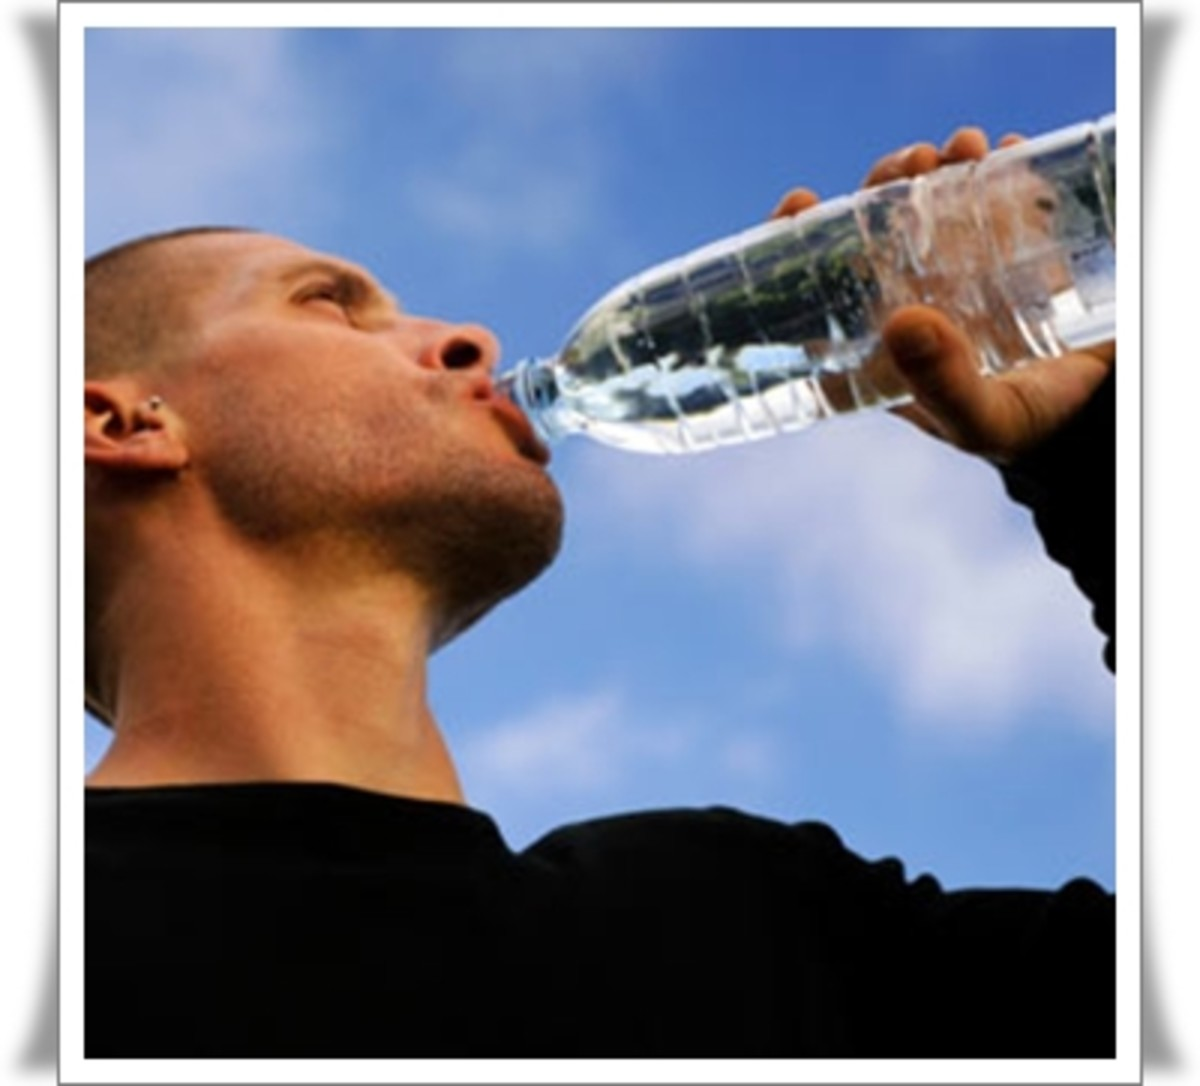 Man drinking water. Photo: Courtesy of liveraid.org